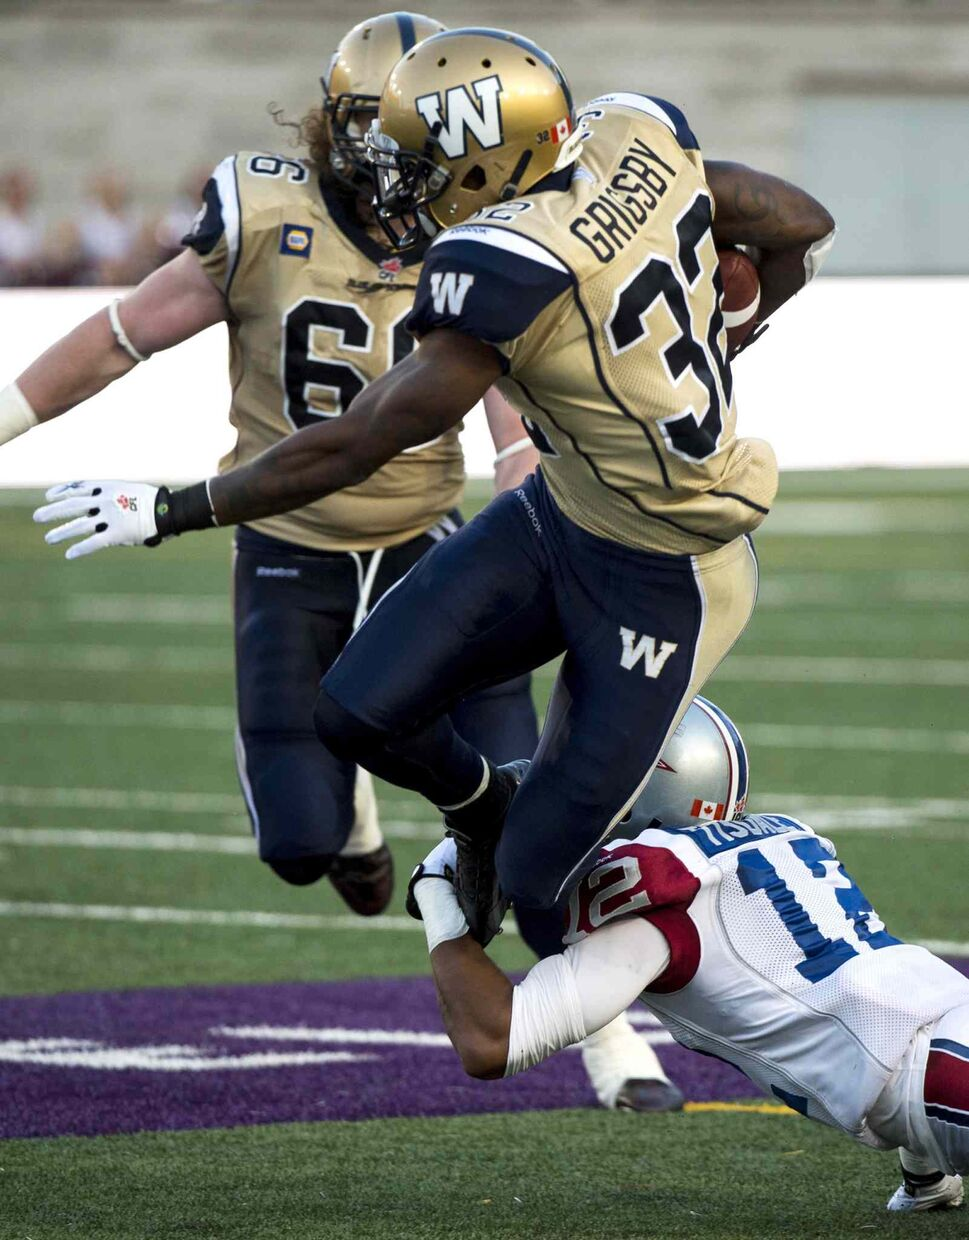 Winnipeg Blue Bombers' running back Nic Grigsby is tackled Montreal Alouettes' cornerback Geoff Tisdale during the second quarter. (Paul Chiasson / The Canadian Press)